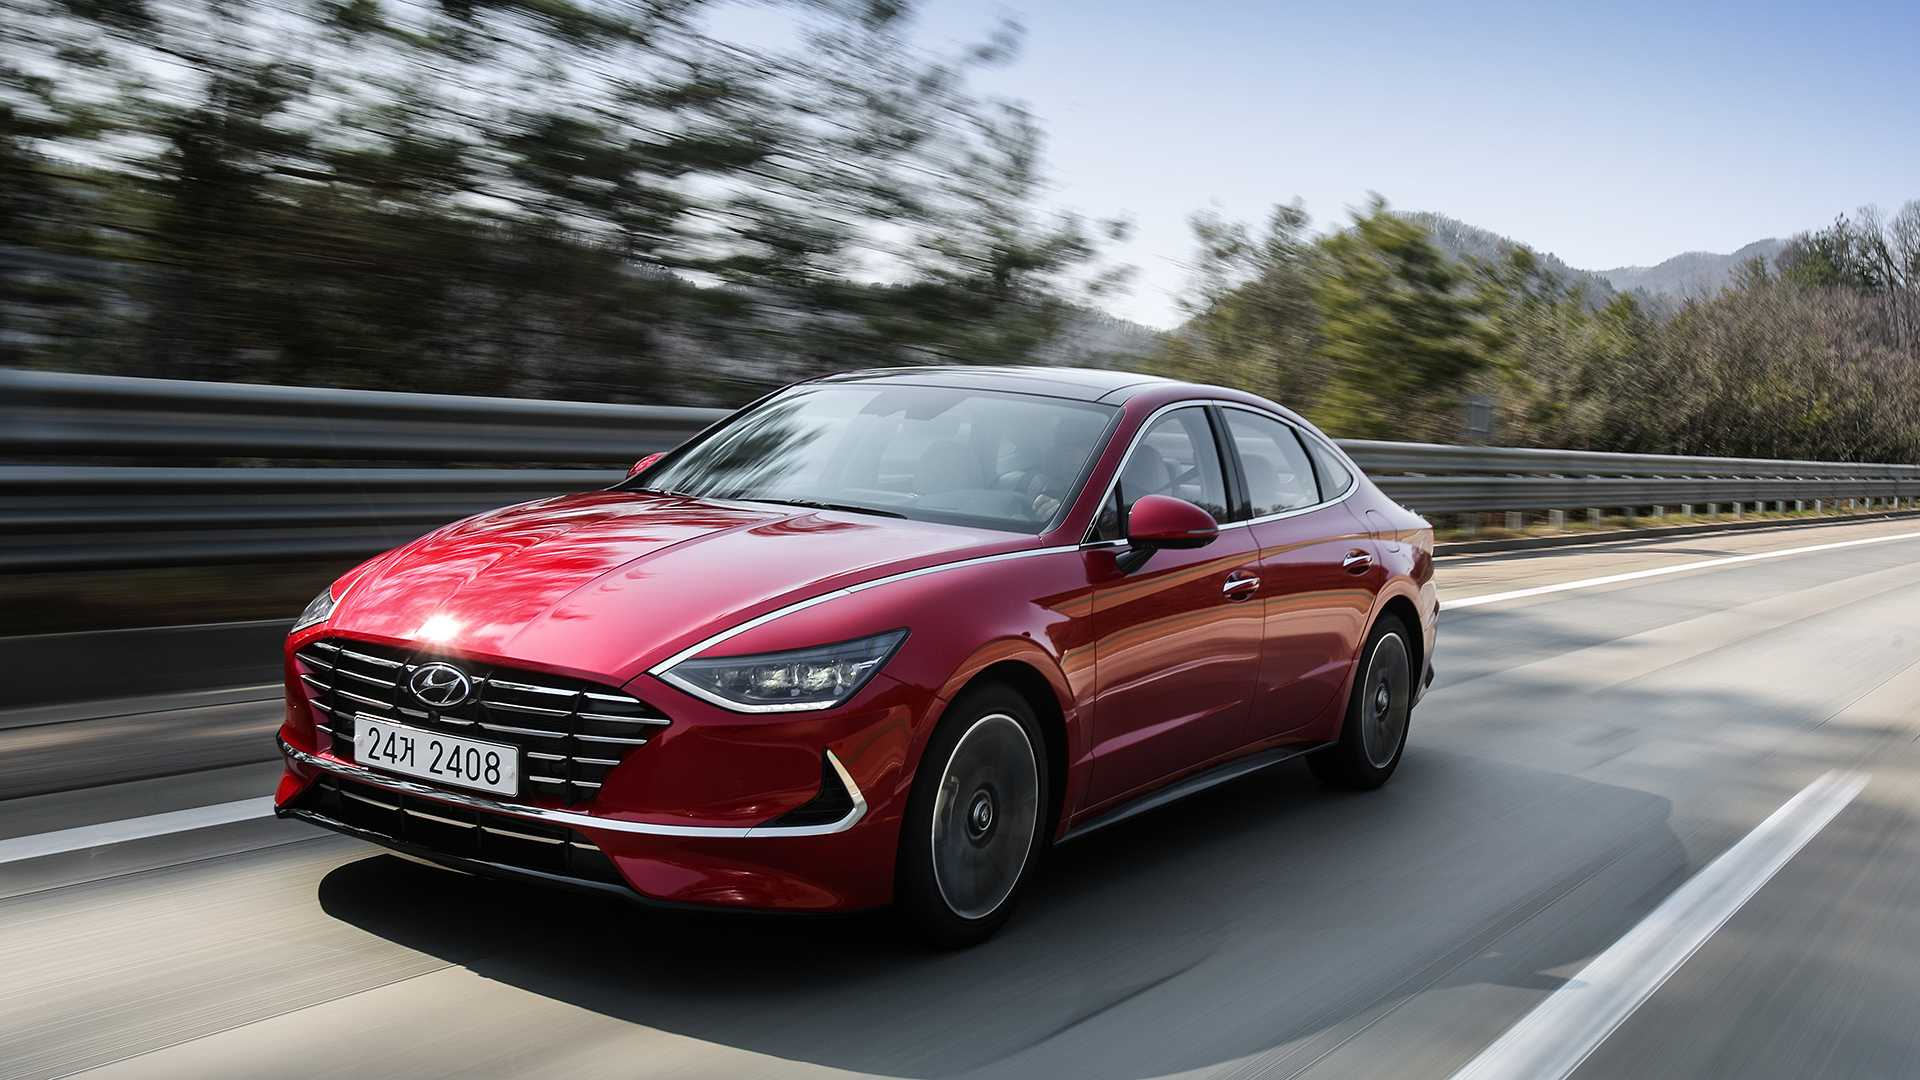 38 Best 2020 Hyundai Sonata Engine Options Reviews